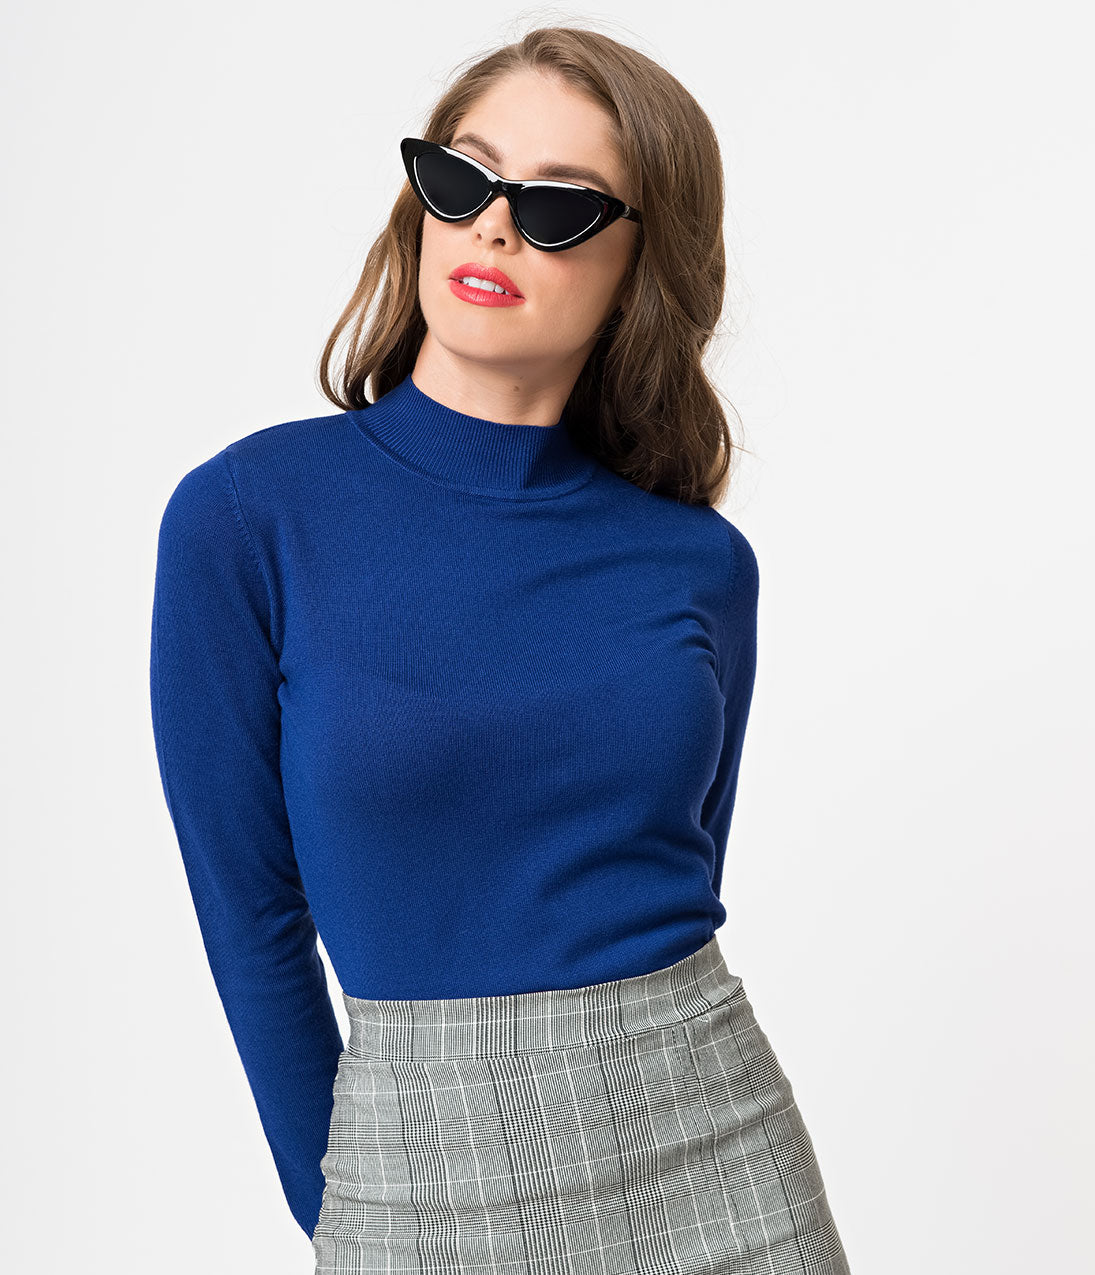 60s Shirts, T-shirt, Blouses | 70s Shirts, Tops, Vests Royal Blue Mock Turtleneck Long Sleeve Knit Sweater $32.00 AT vintagedancer.com